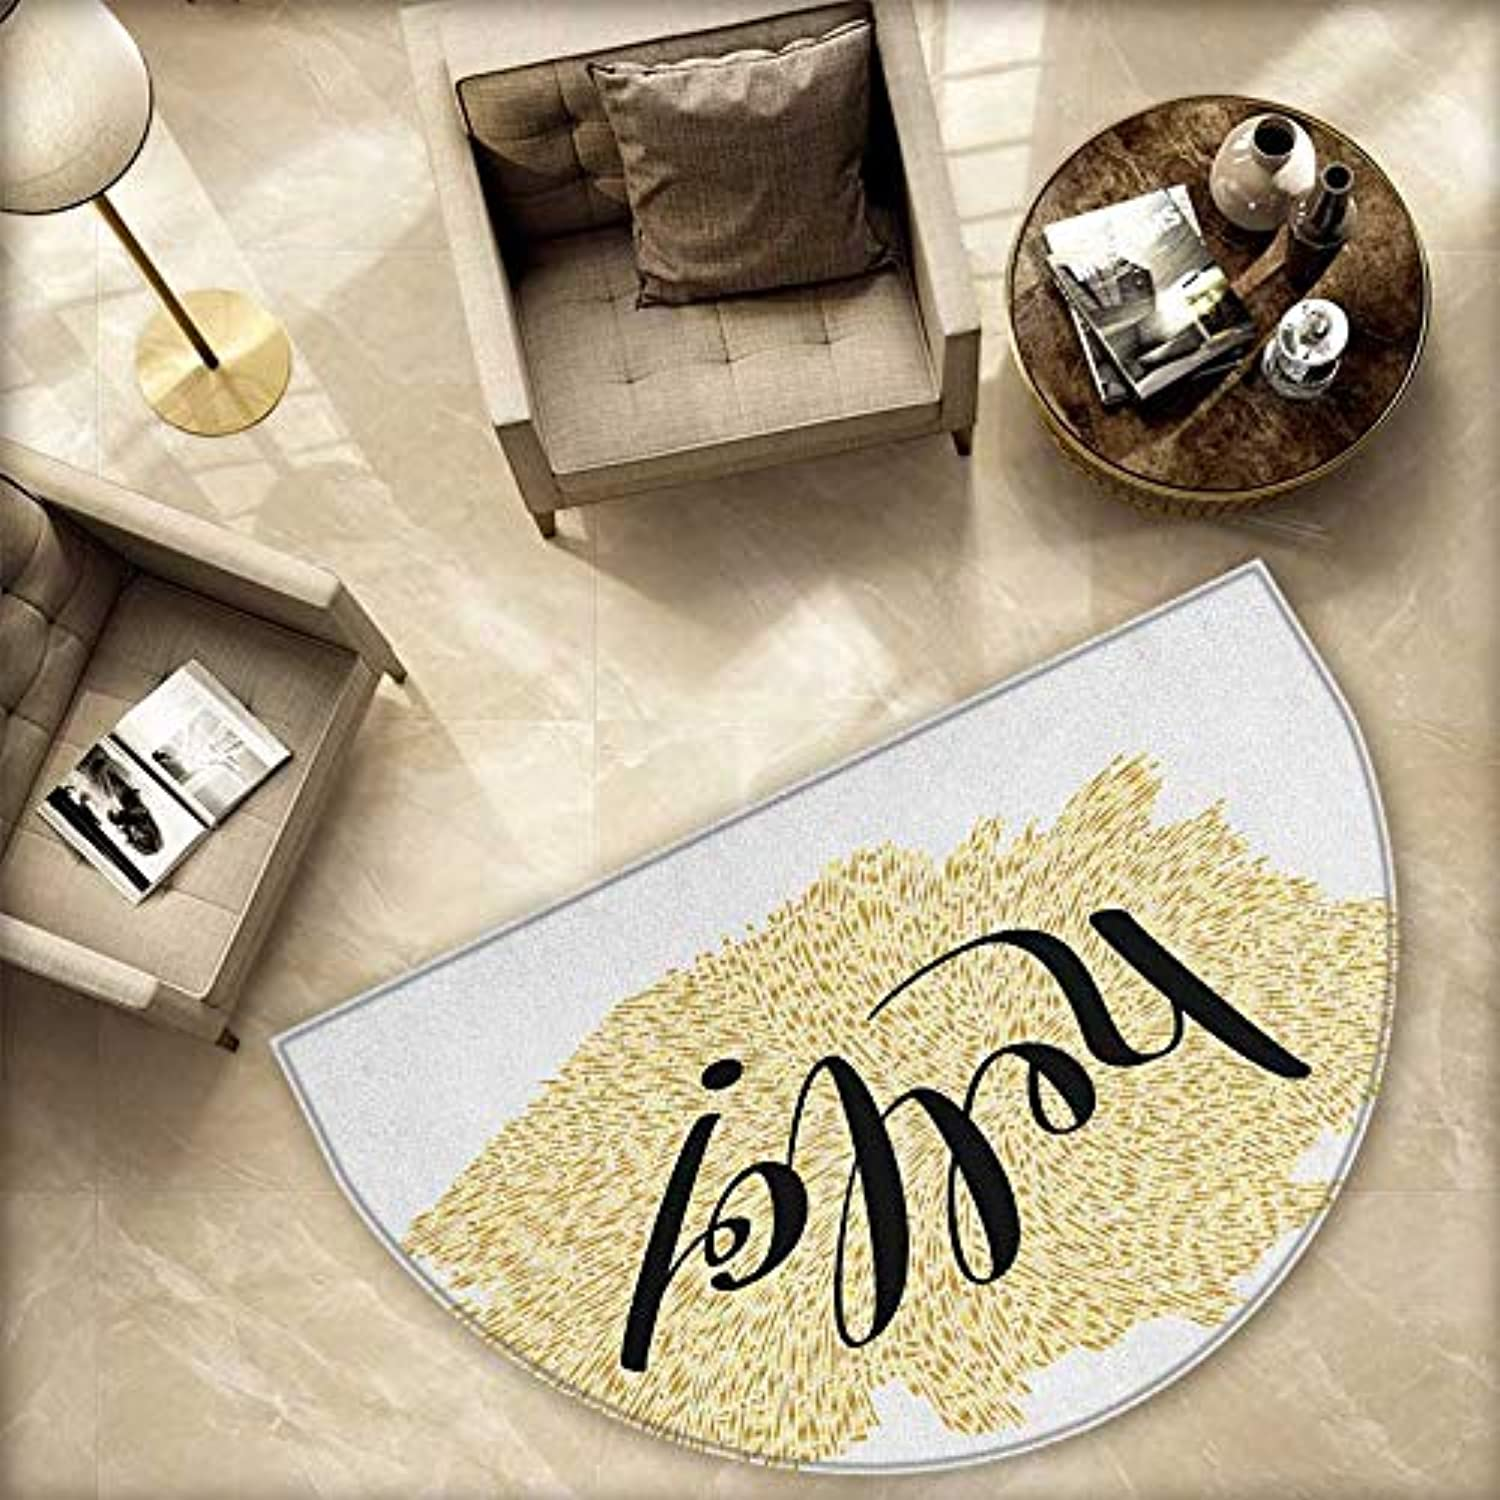 Hello Semicircle Doormat Brush Pen Lettering Hello in Black with gold color Mosaic Looking Background Halfmoon doormats H 78.7  xD 118.1  Black White gold